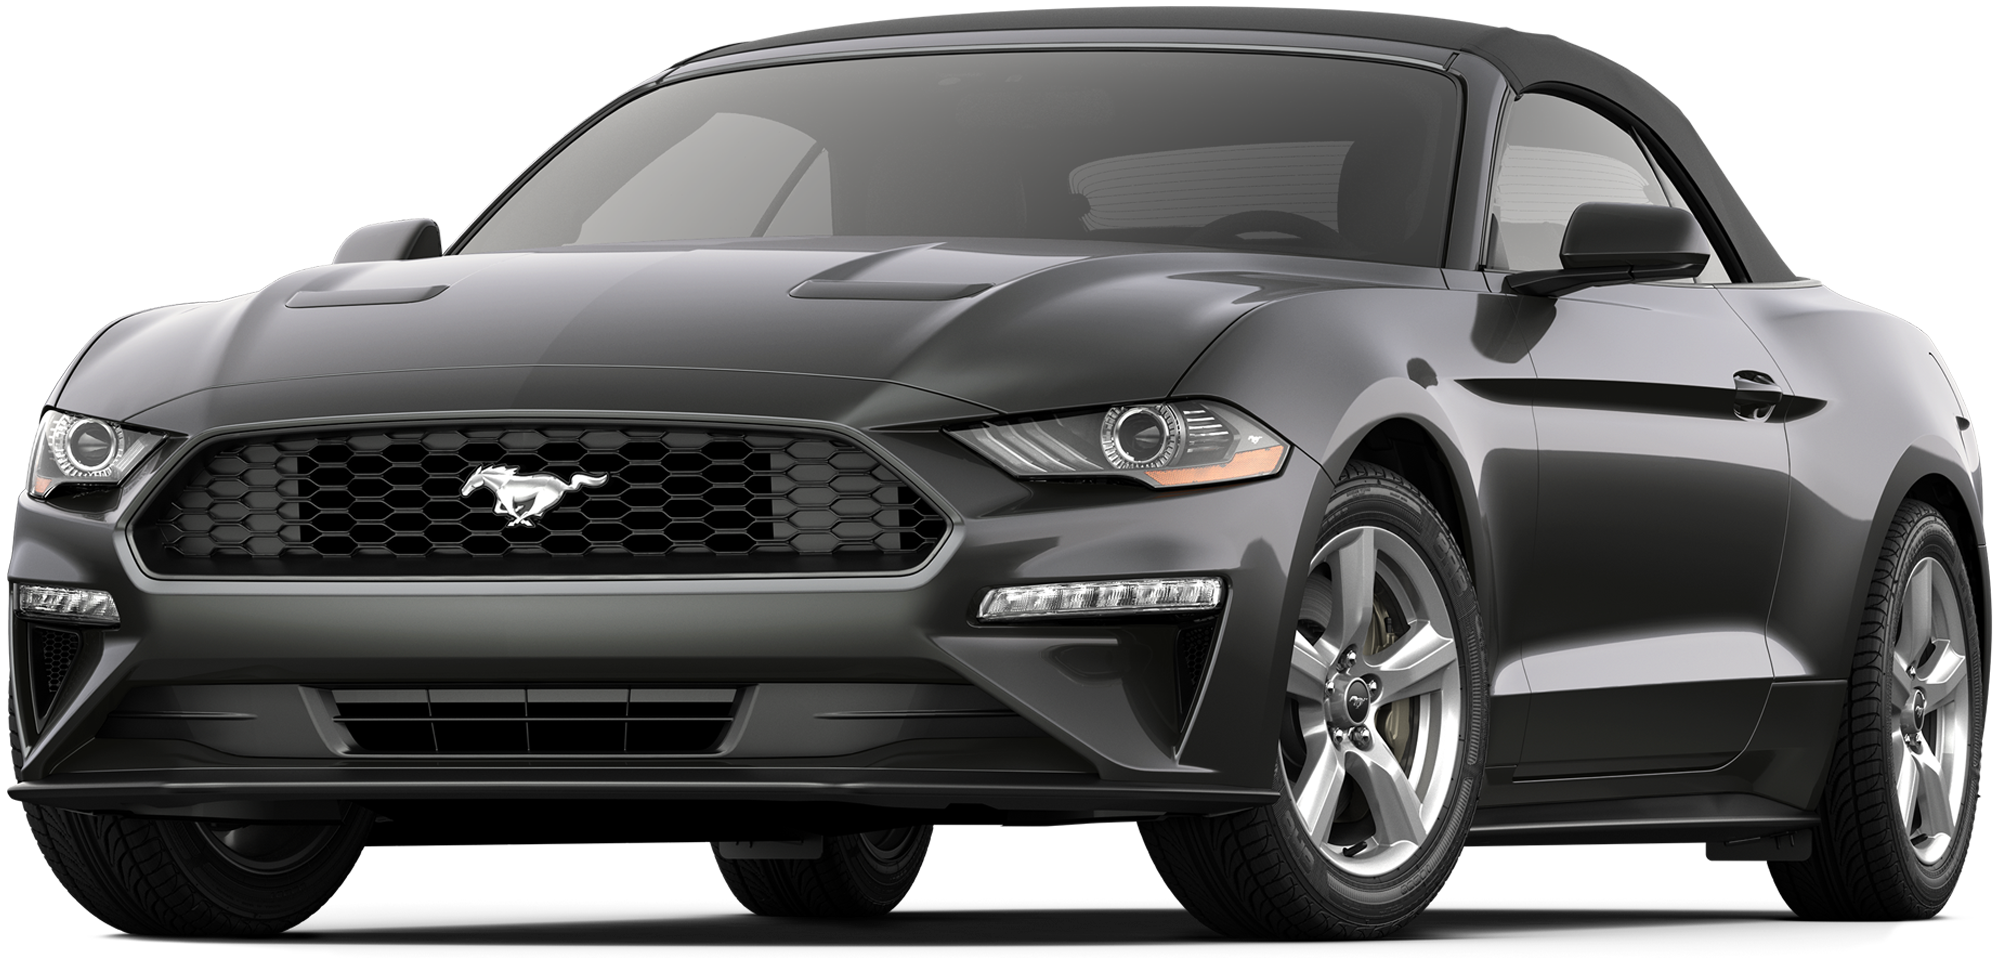 2020 Ford Mustang Incentives, Specials & Offers in ...